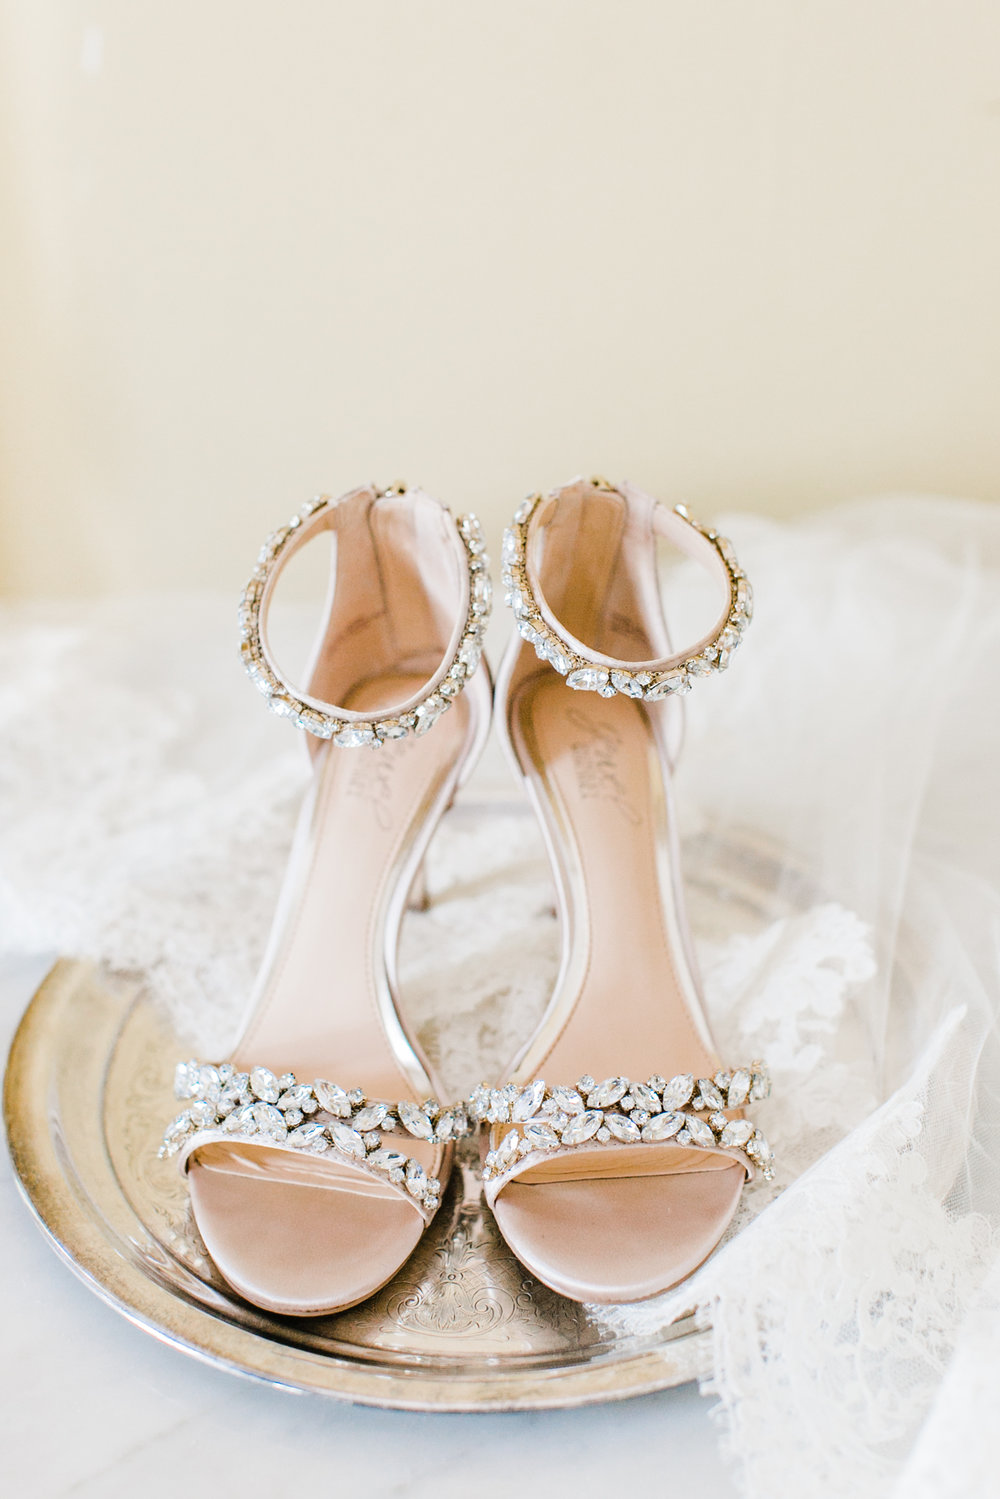 lacehousewedding-24.jpg